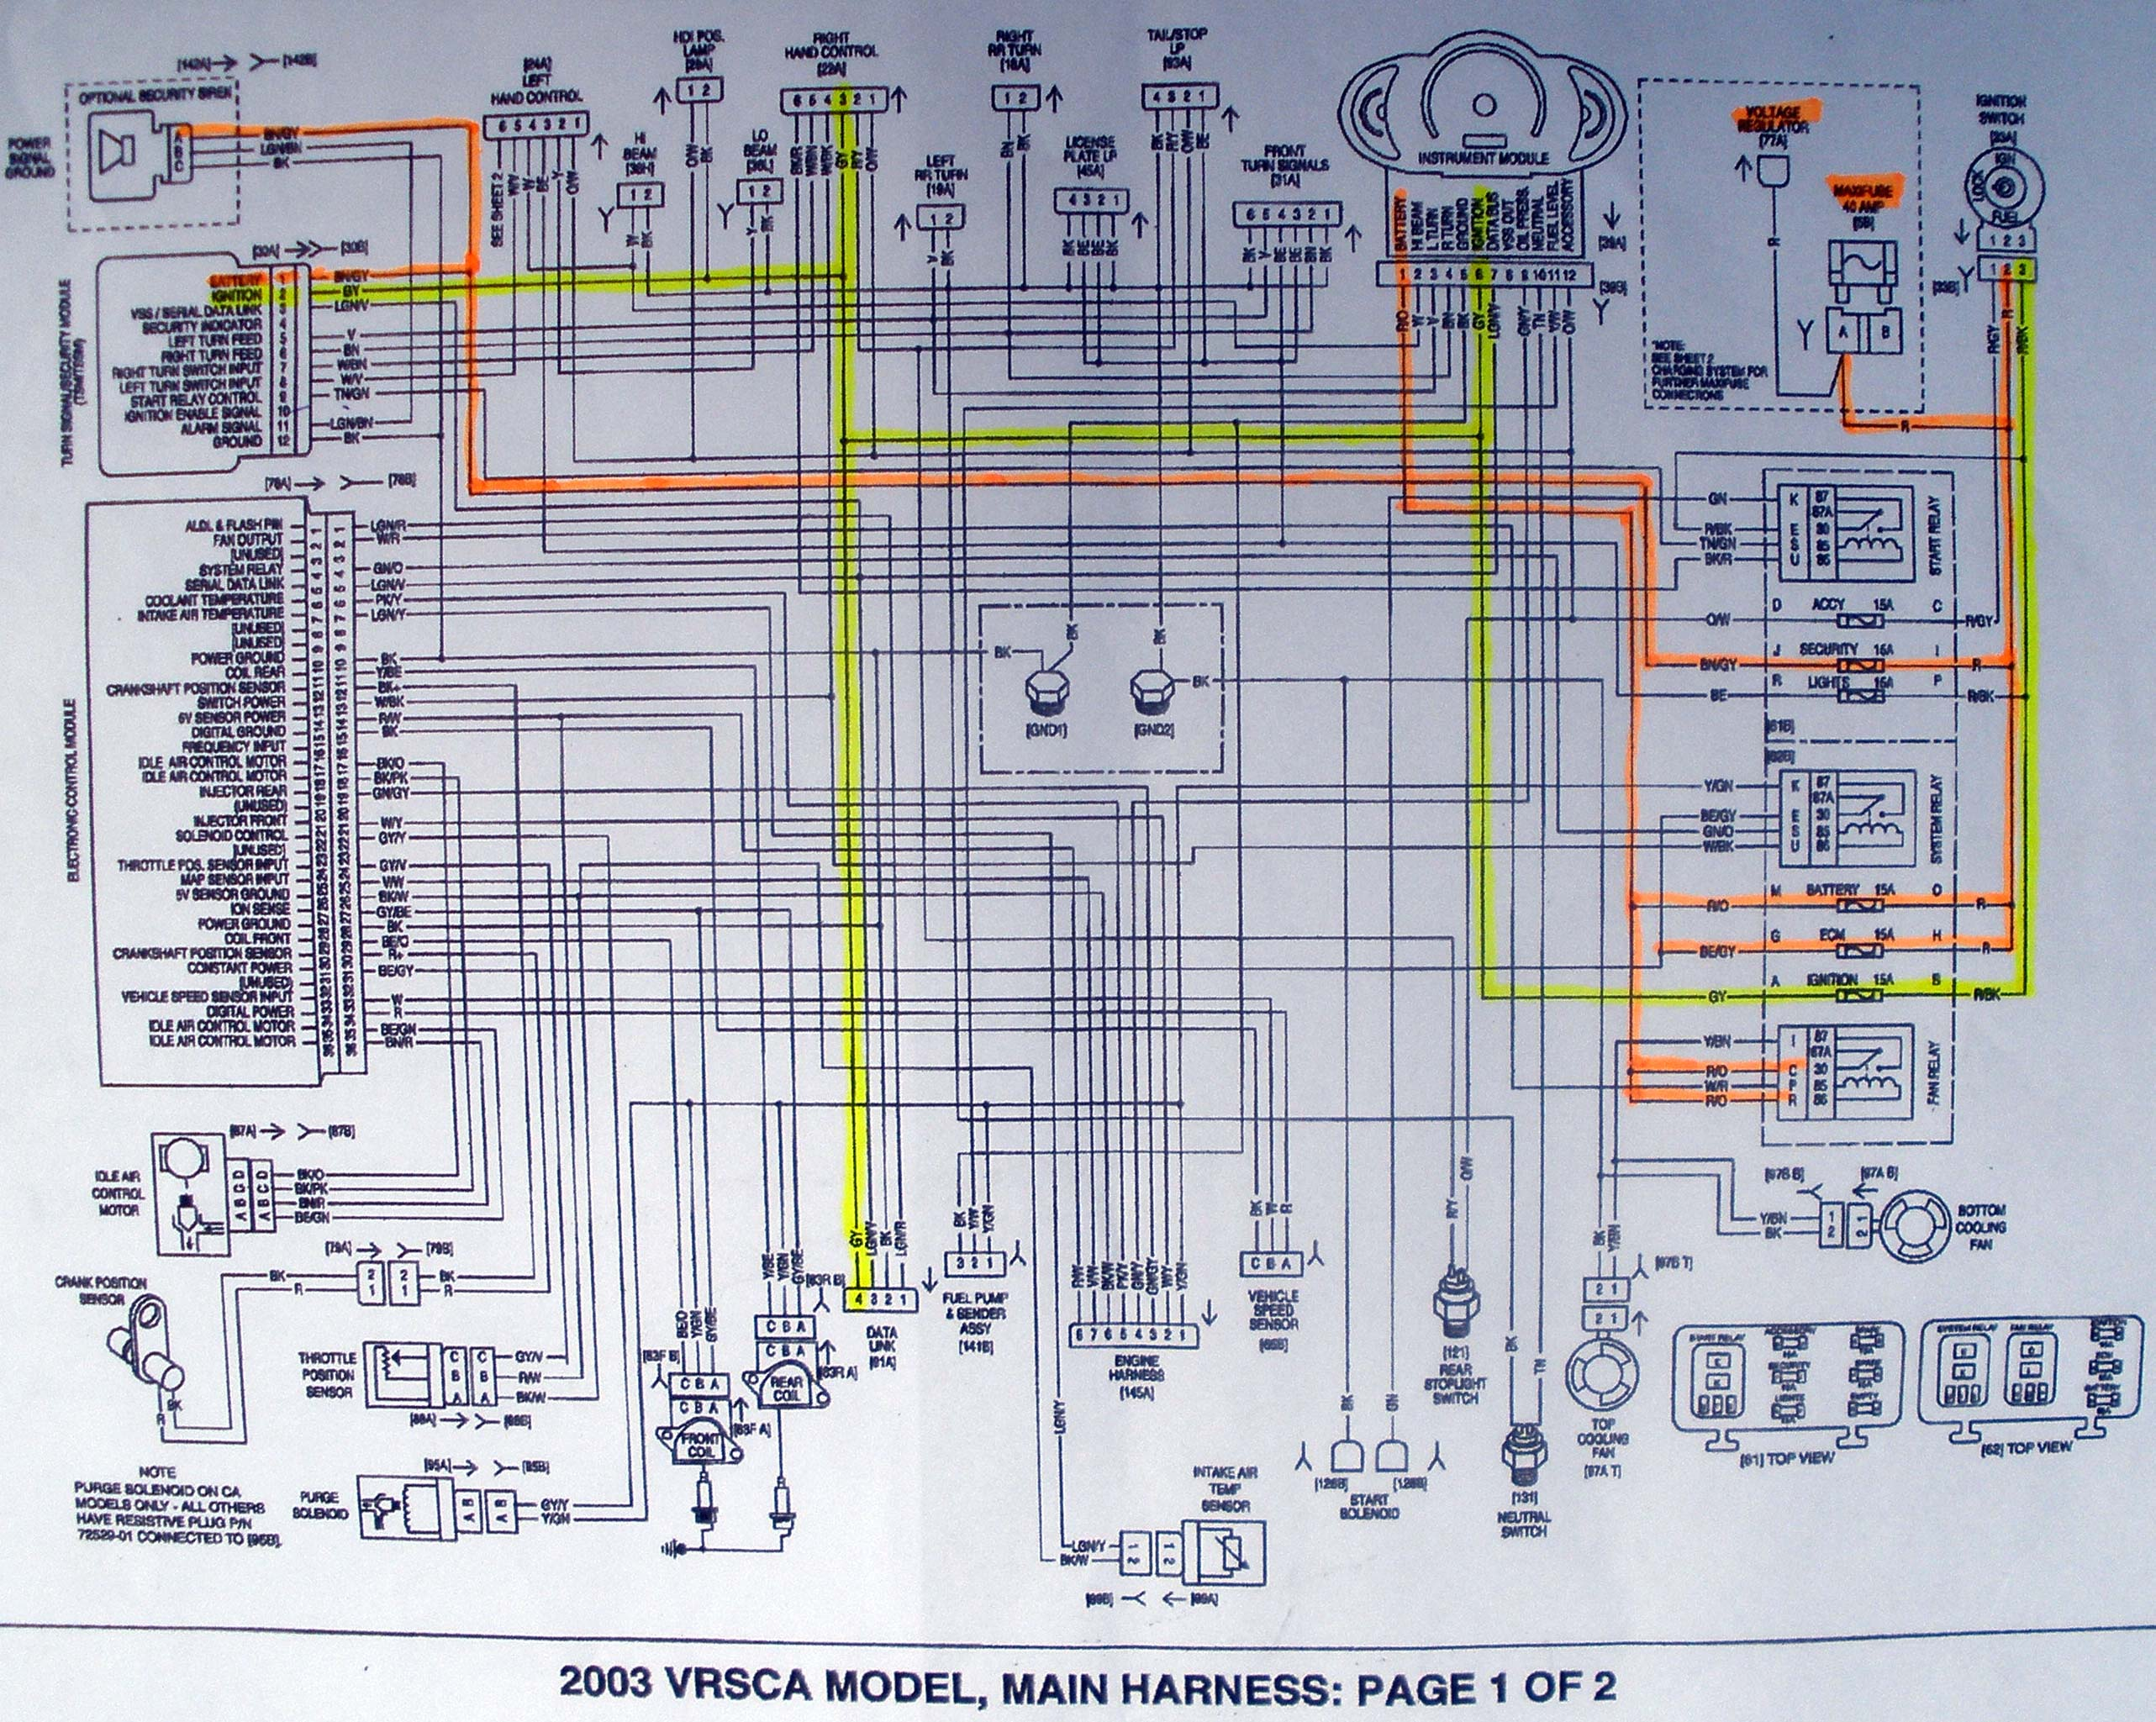 plete wiring diagram of 1950 1951 with Ignition Switch Wiring Diagram on 1966 Impala Convertible Wiring Diagram furthermore Jerr Dan Wiring Diagrams besides Ignition Switch Wiring Diagram further Ford F100 Classic Resto Custom Hot Rod Shop Truck Not Rat Rod Image 1 besides Wiring Diagram Of 1950 1951 Chevrolet Pickup Trucks All.